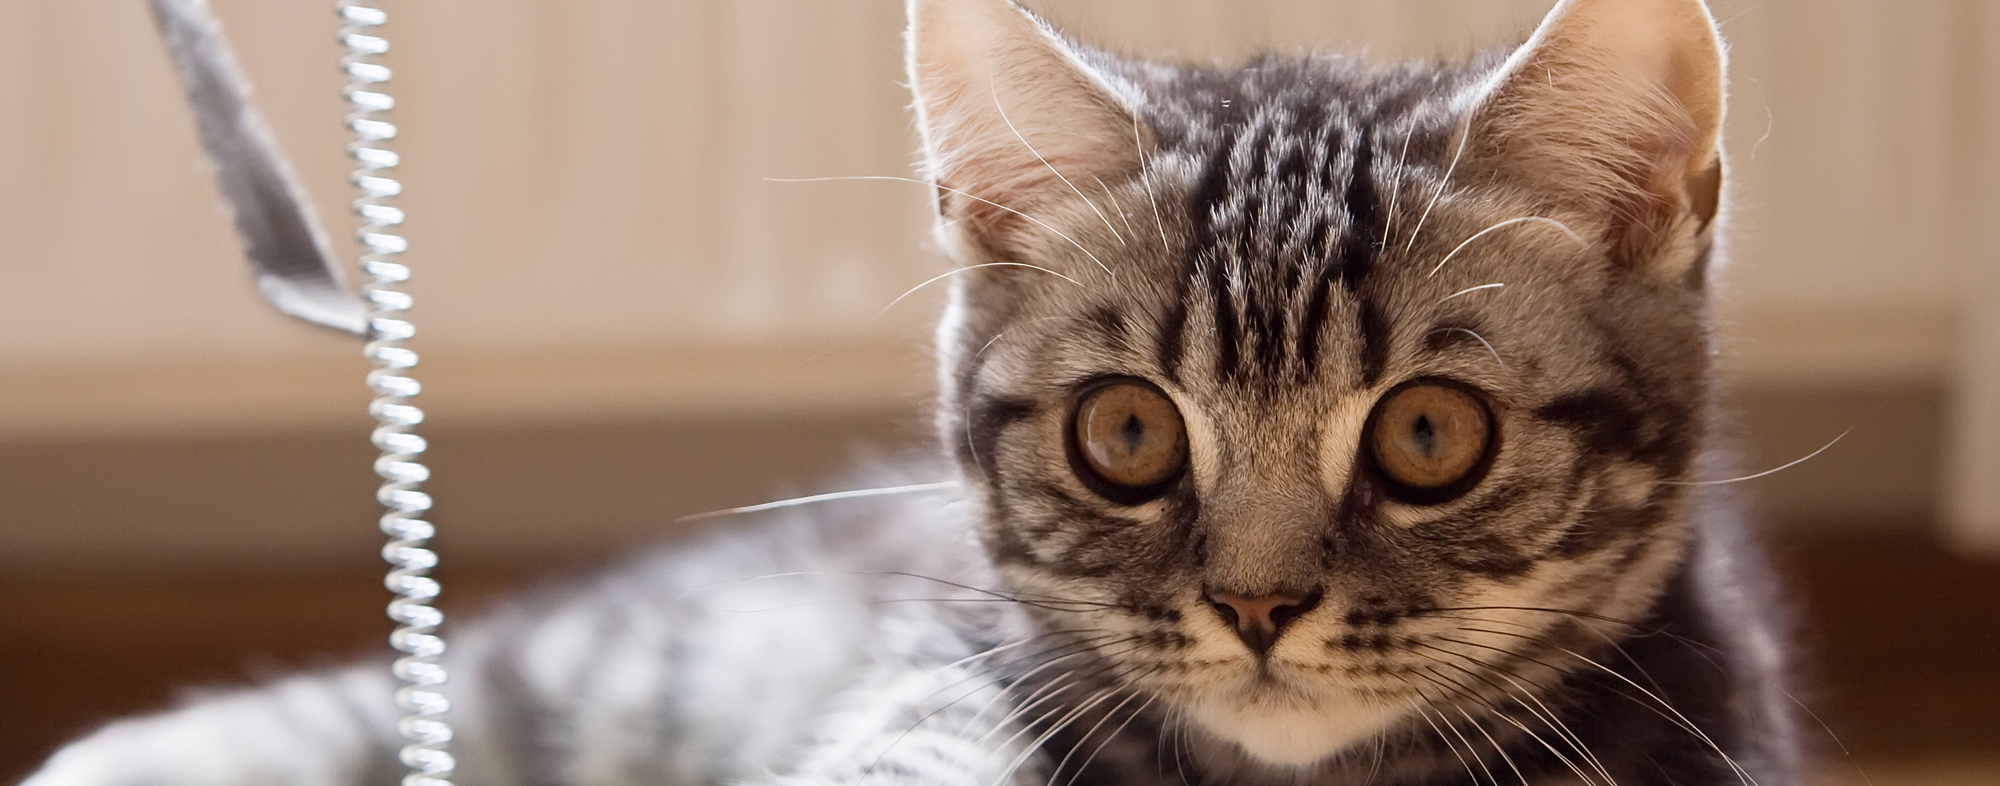 With large eyes, small kitten learns social behavior by watching siblings